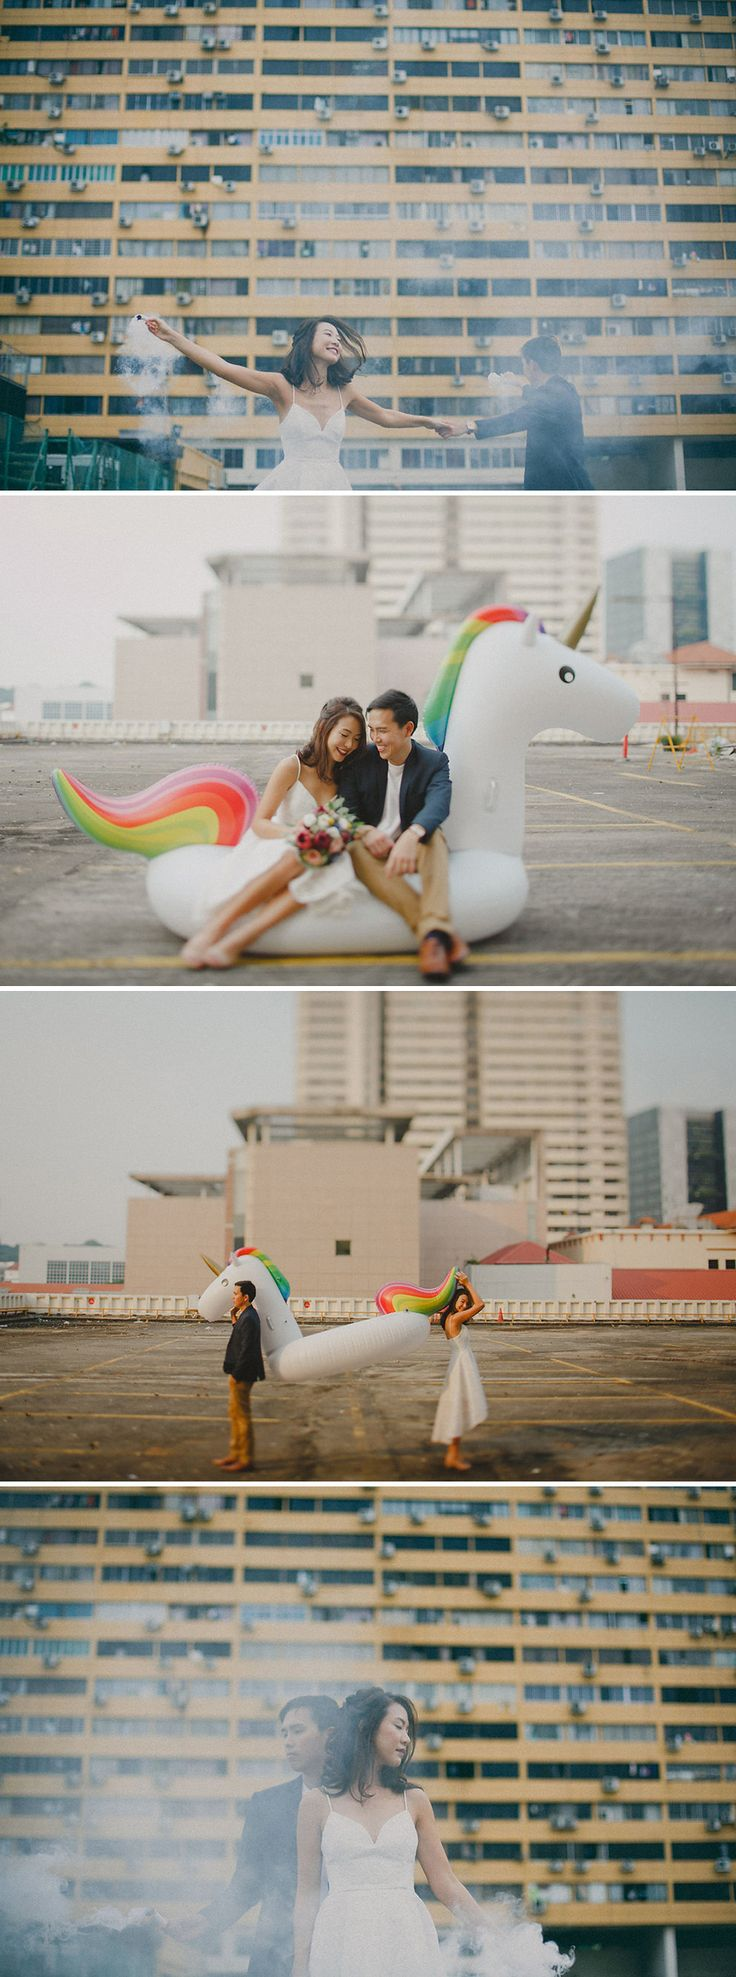 """Long distance and the trials of having to undergo brain surgery were no match for these two """"robot and unicorn"""" lovebirds who tied the knot in a quirky wedding at Lepark - a rooftop bar at People's Park Complex, captured by Samuel Goh Photography. Rich autumn-inspired jewel tones, a giant unicorn float, and a sumptuous bridal party breakfast (in lieu of a gatecrash) made their nuptials look beautiful but even more importantly, allowed the bride and groom to truly spend time..."""